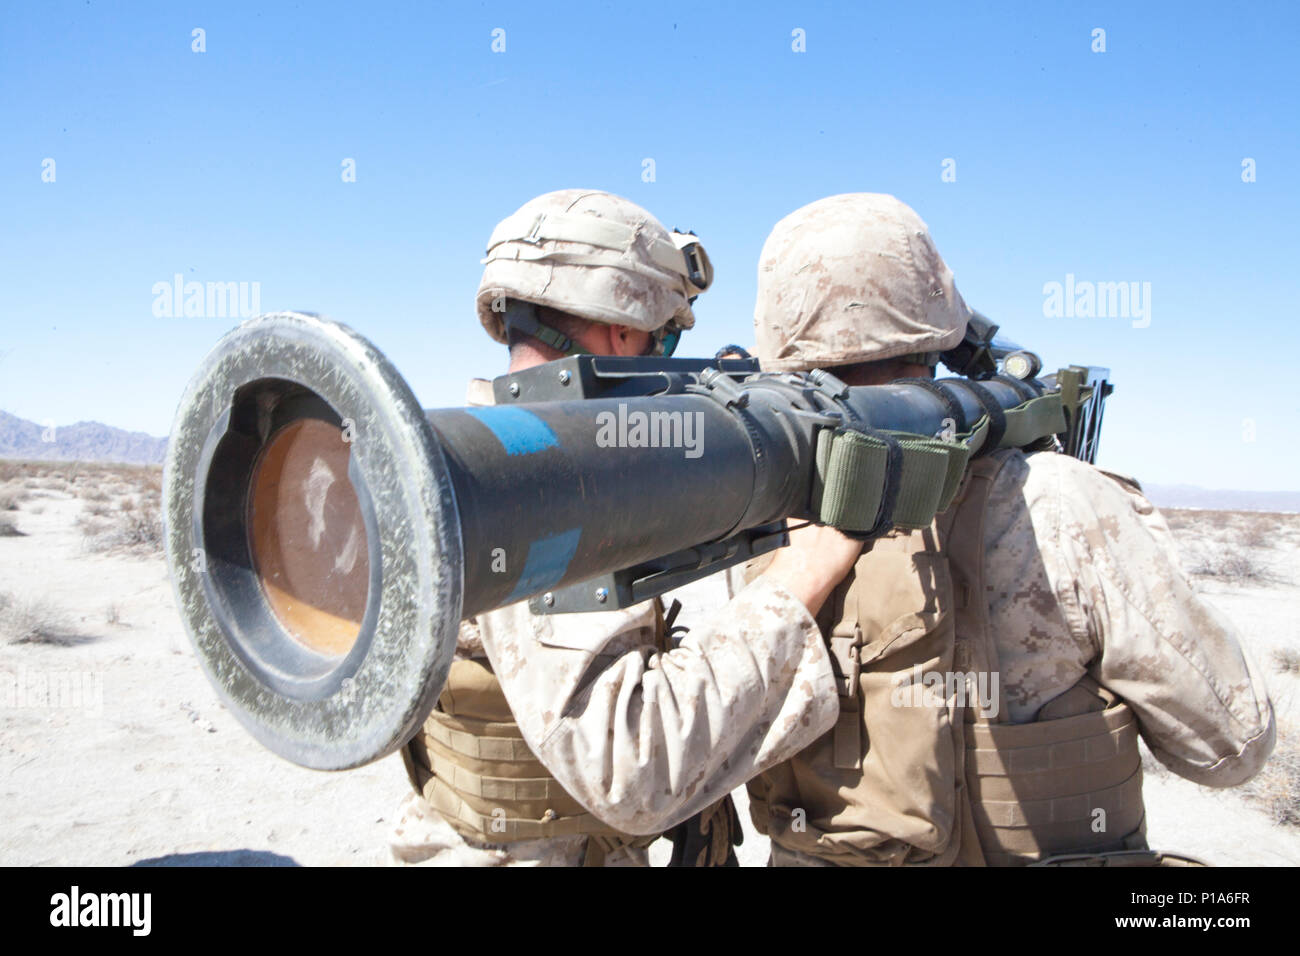 U.S. Marine Corps Cpl. Brandon Stewart and Lance Cpl. Pierre Ponce, low altitude air defense (LAAD) gunners with 2nd LAAD Battalion demonstrate the use of a FIM-92 Stinger during a ground based air defense exercise in support of Weapons and Tactics Instructor Course (WTI) 1-17 at Site 50, Wellton, Ariz., Oct. 6, 2016. WTI is a seven week training event, hosted by Marine Aviation Weapons and Tactics Squadron One (MAWTS-1) cadre, which emphasizes operational integration of the six functions of Marine Corps aviation in support of a Marine Air Ground Task Force. MAWTS-1 provides standardized advan - Stock Image